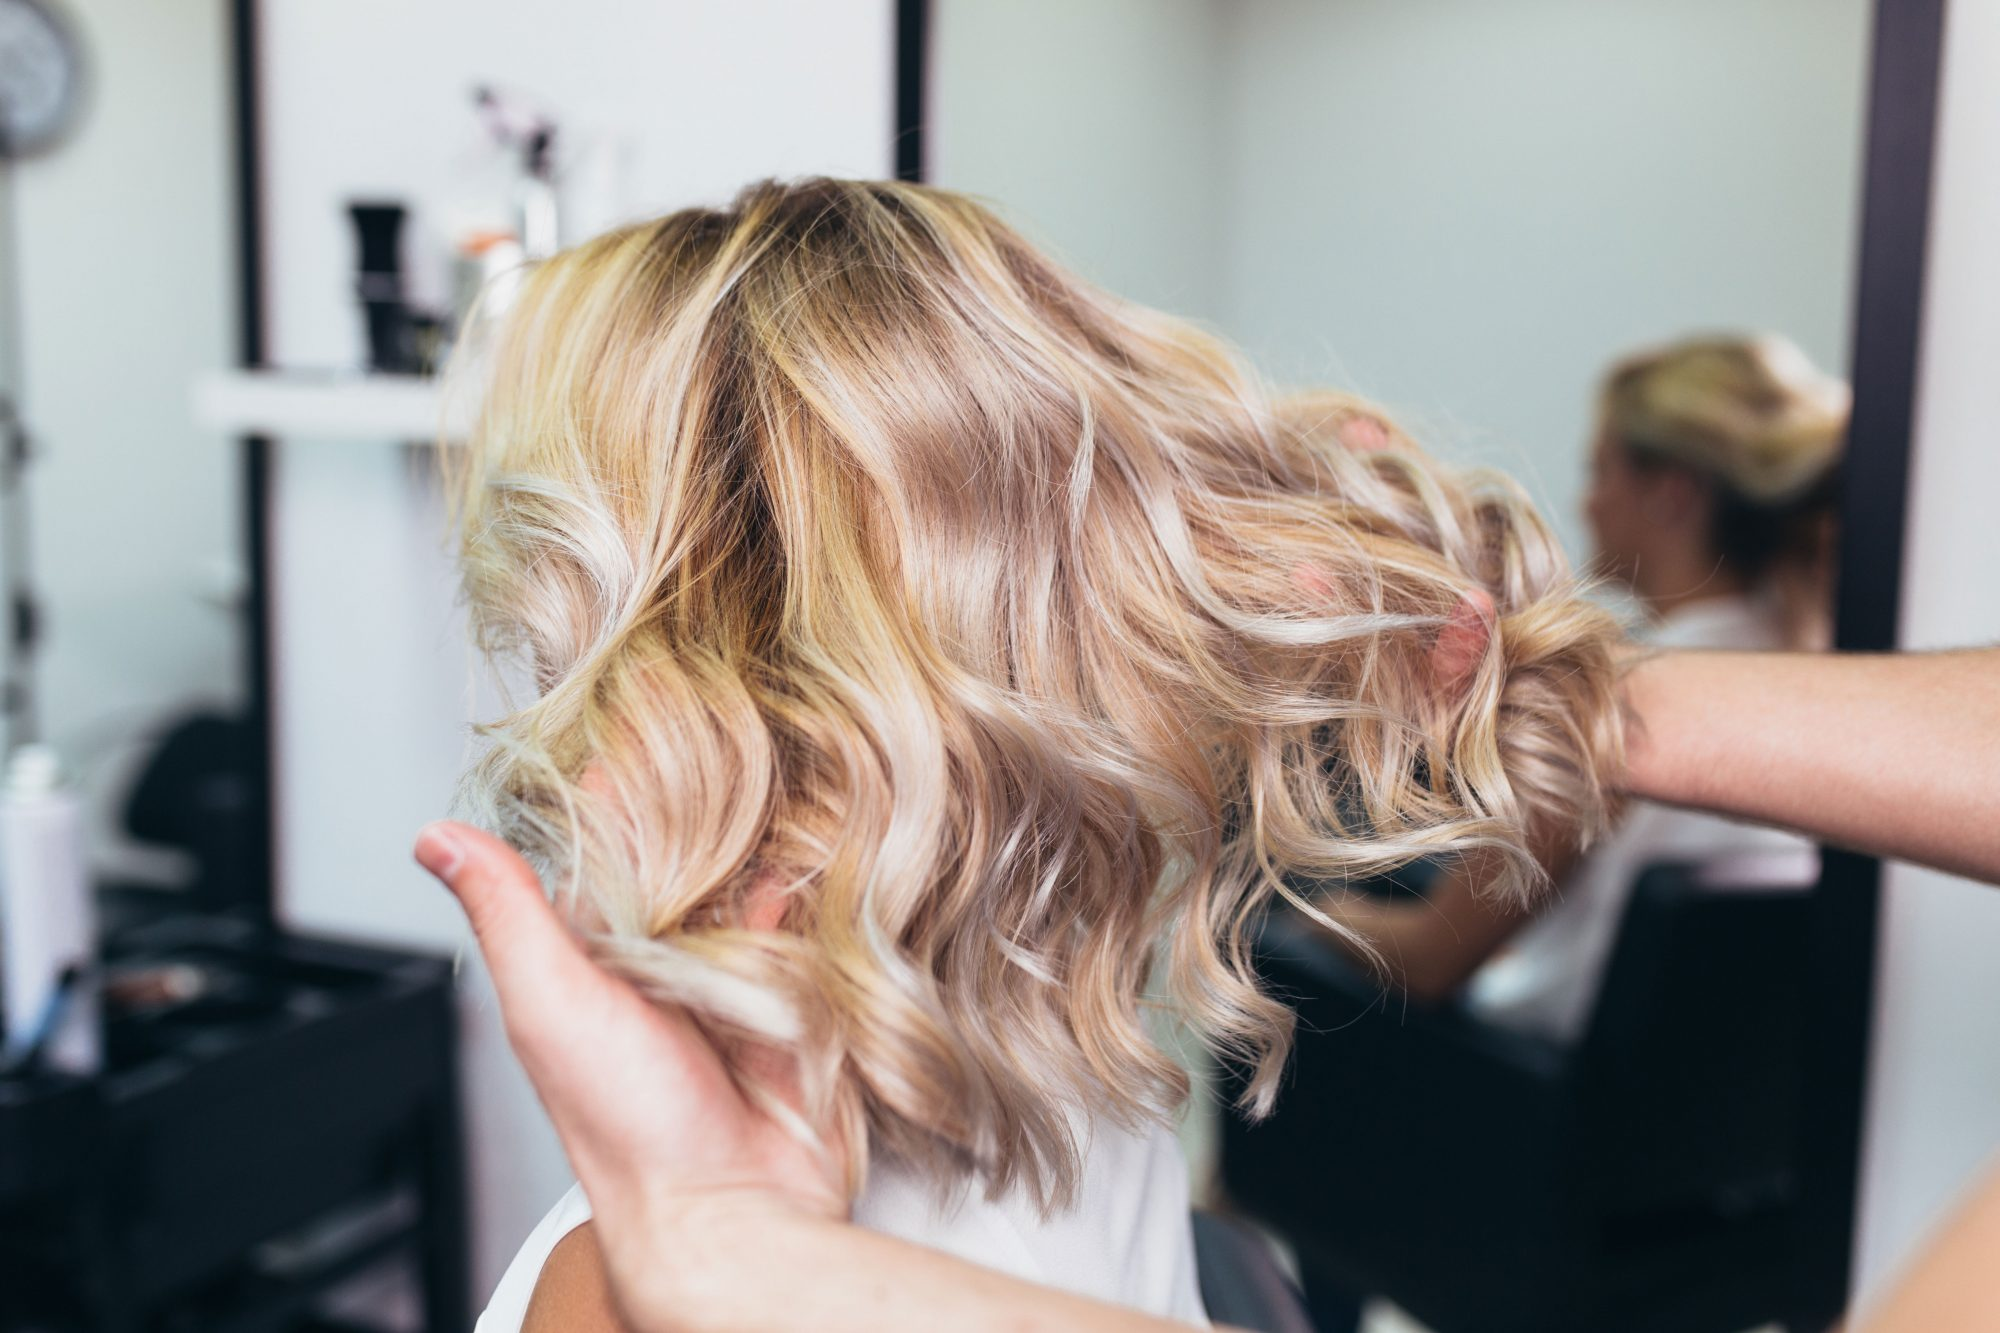 Blonde Hair At Salon